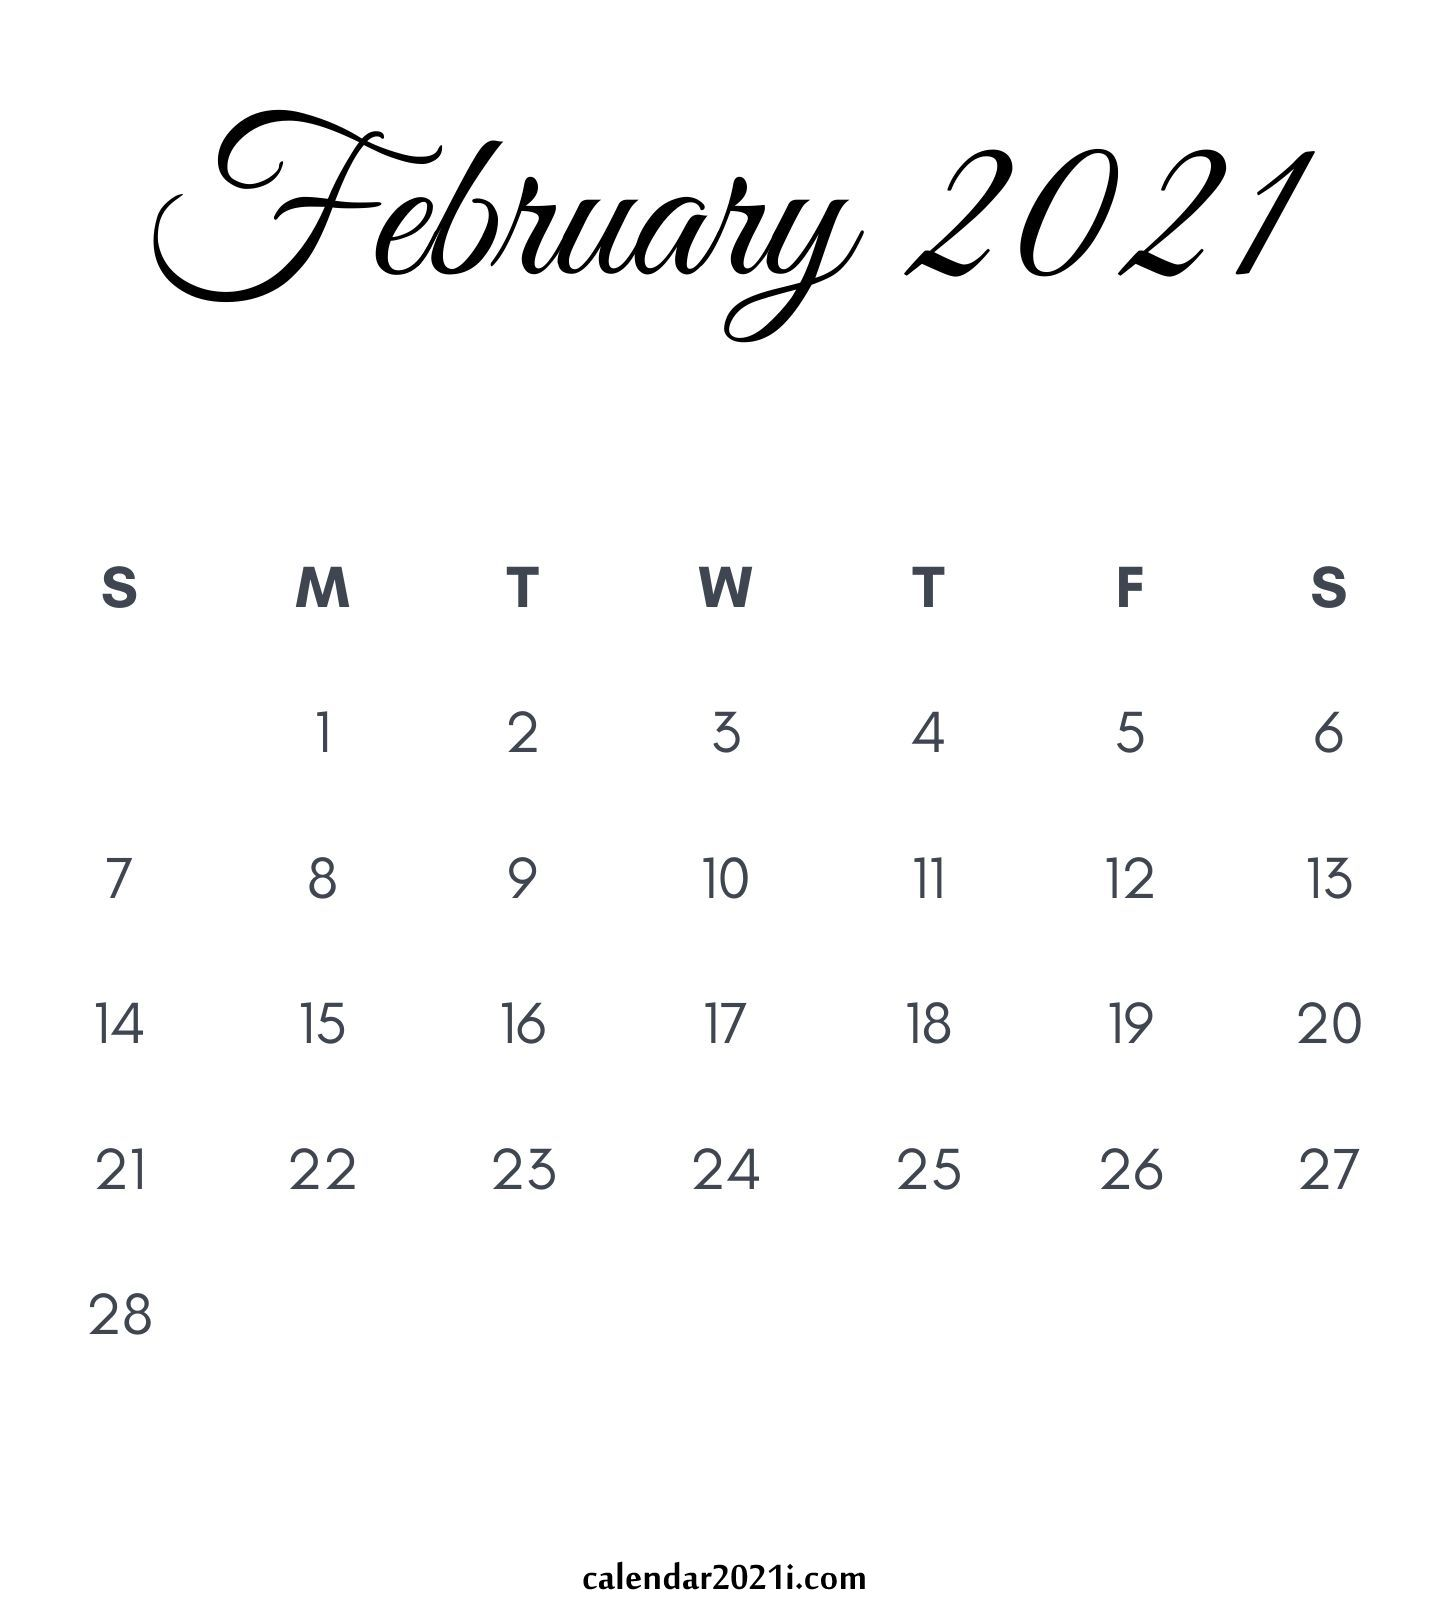 February 2021 Calendar Printable Floral Holidays Wallpaper